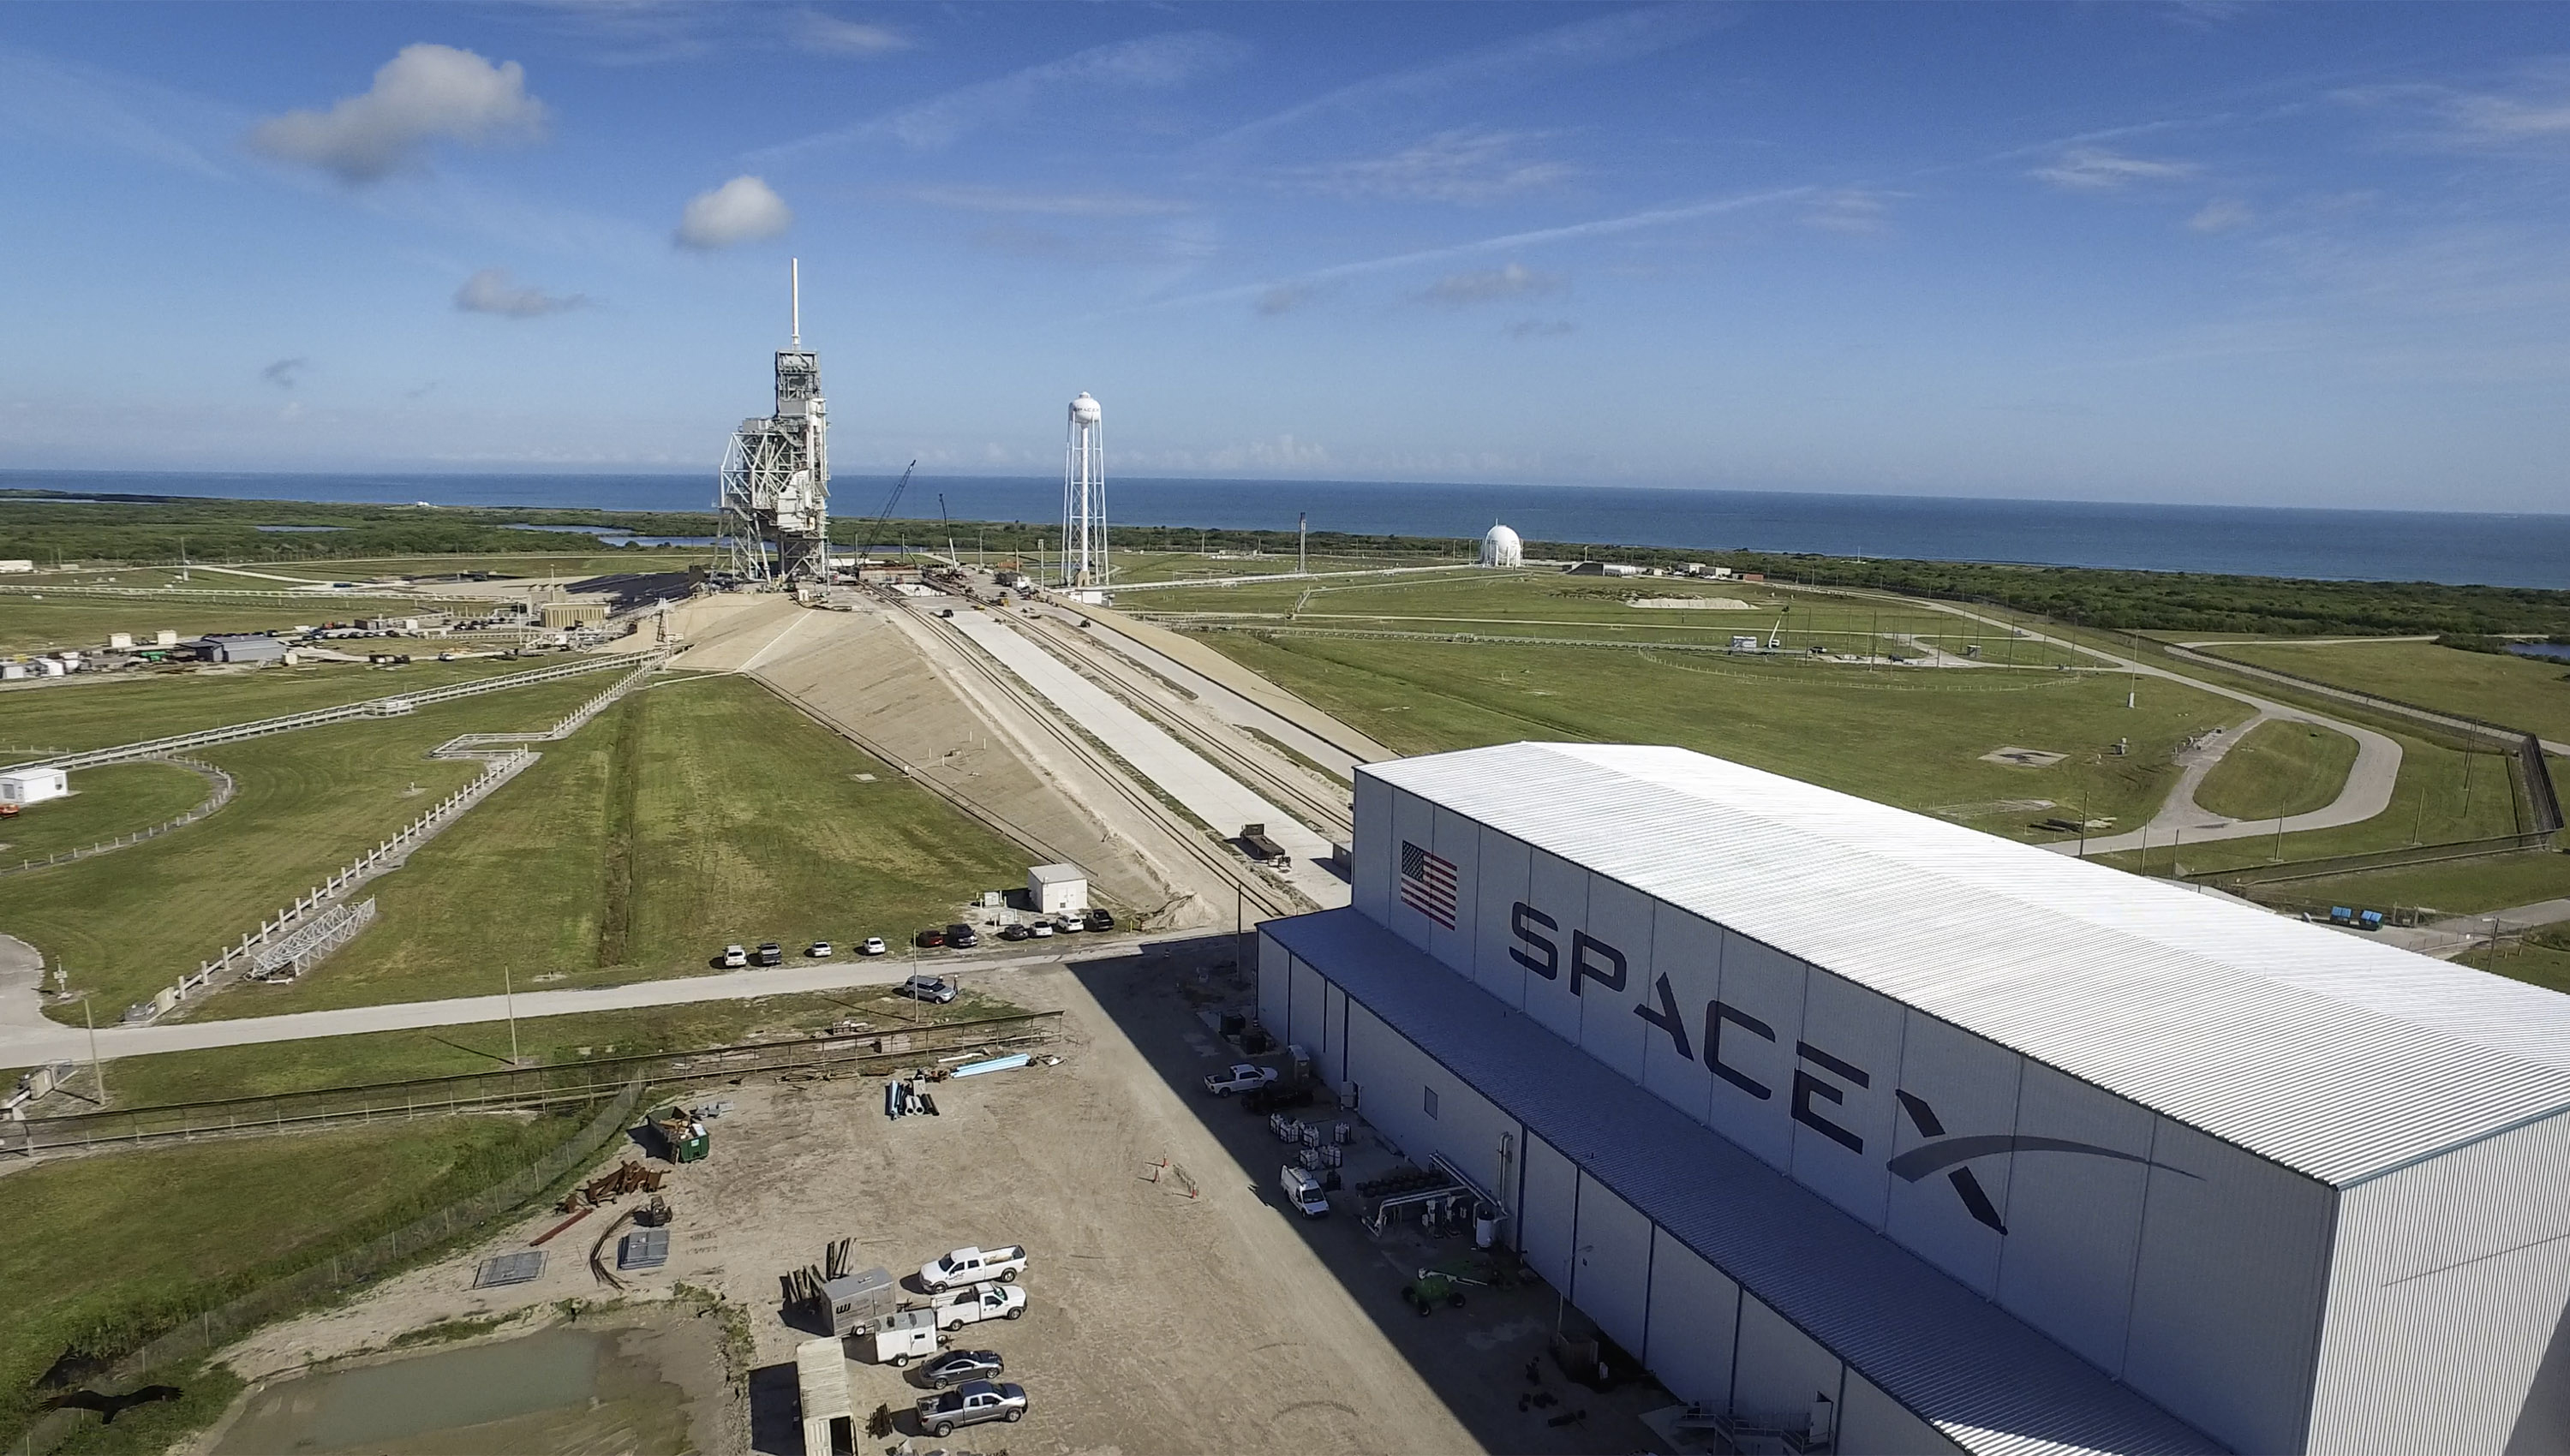 Space X on Pad 39A Cape Canaveral, Florida